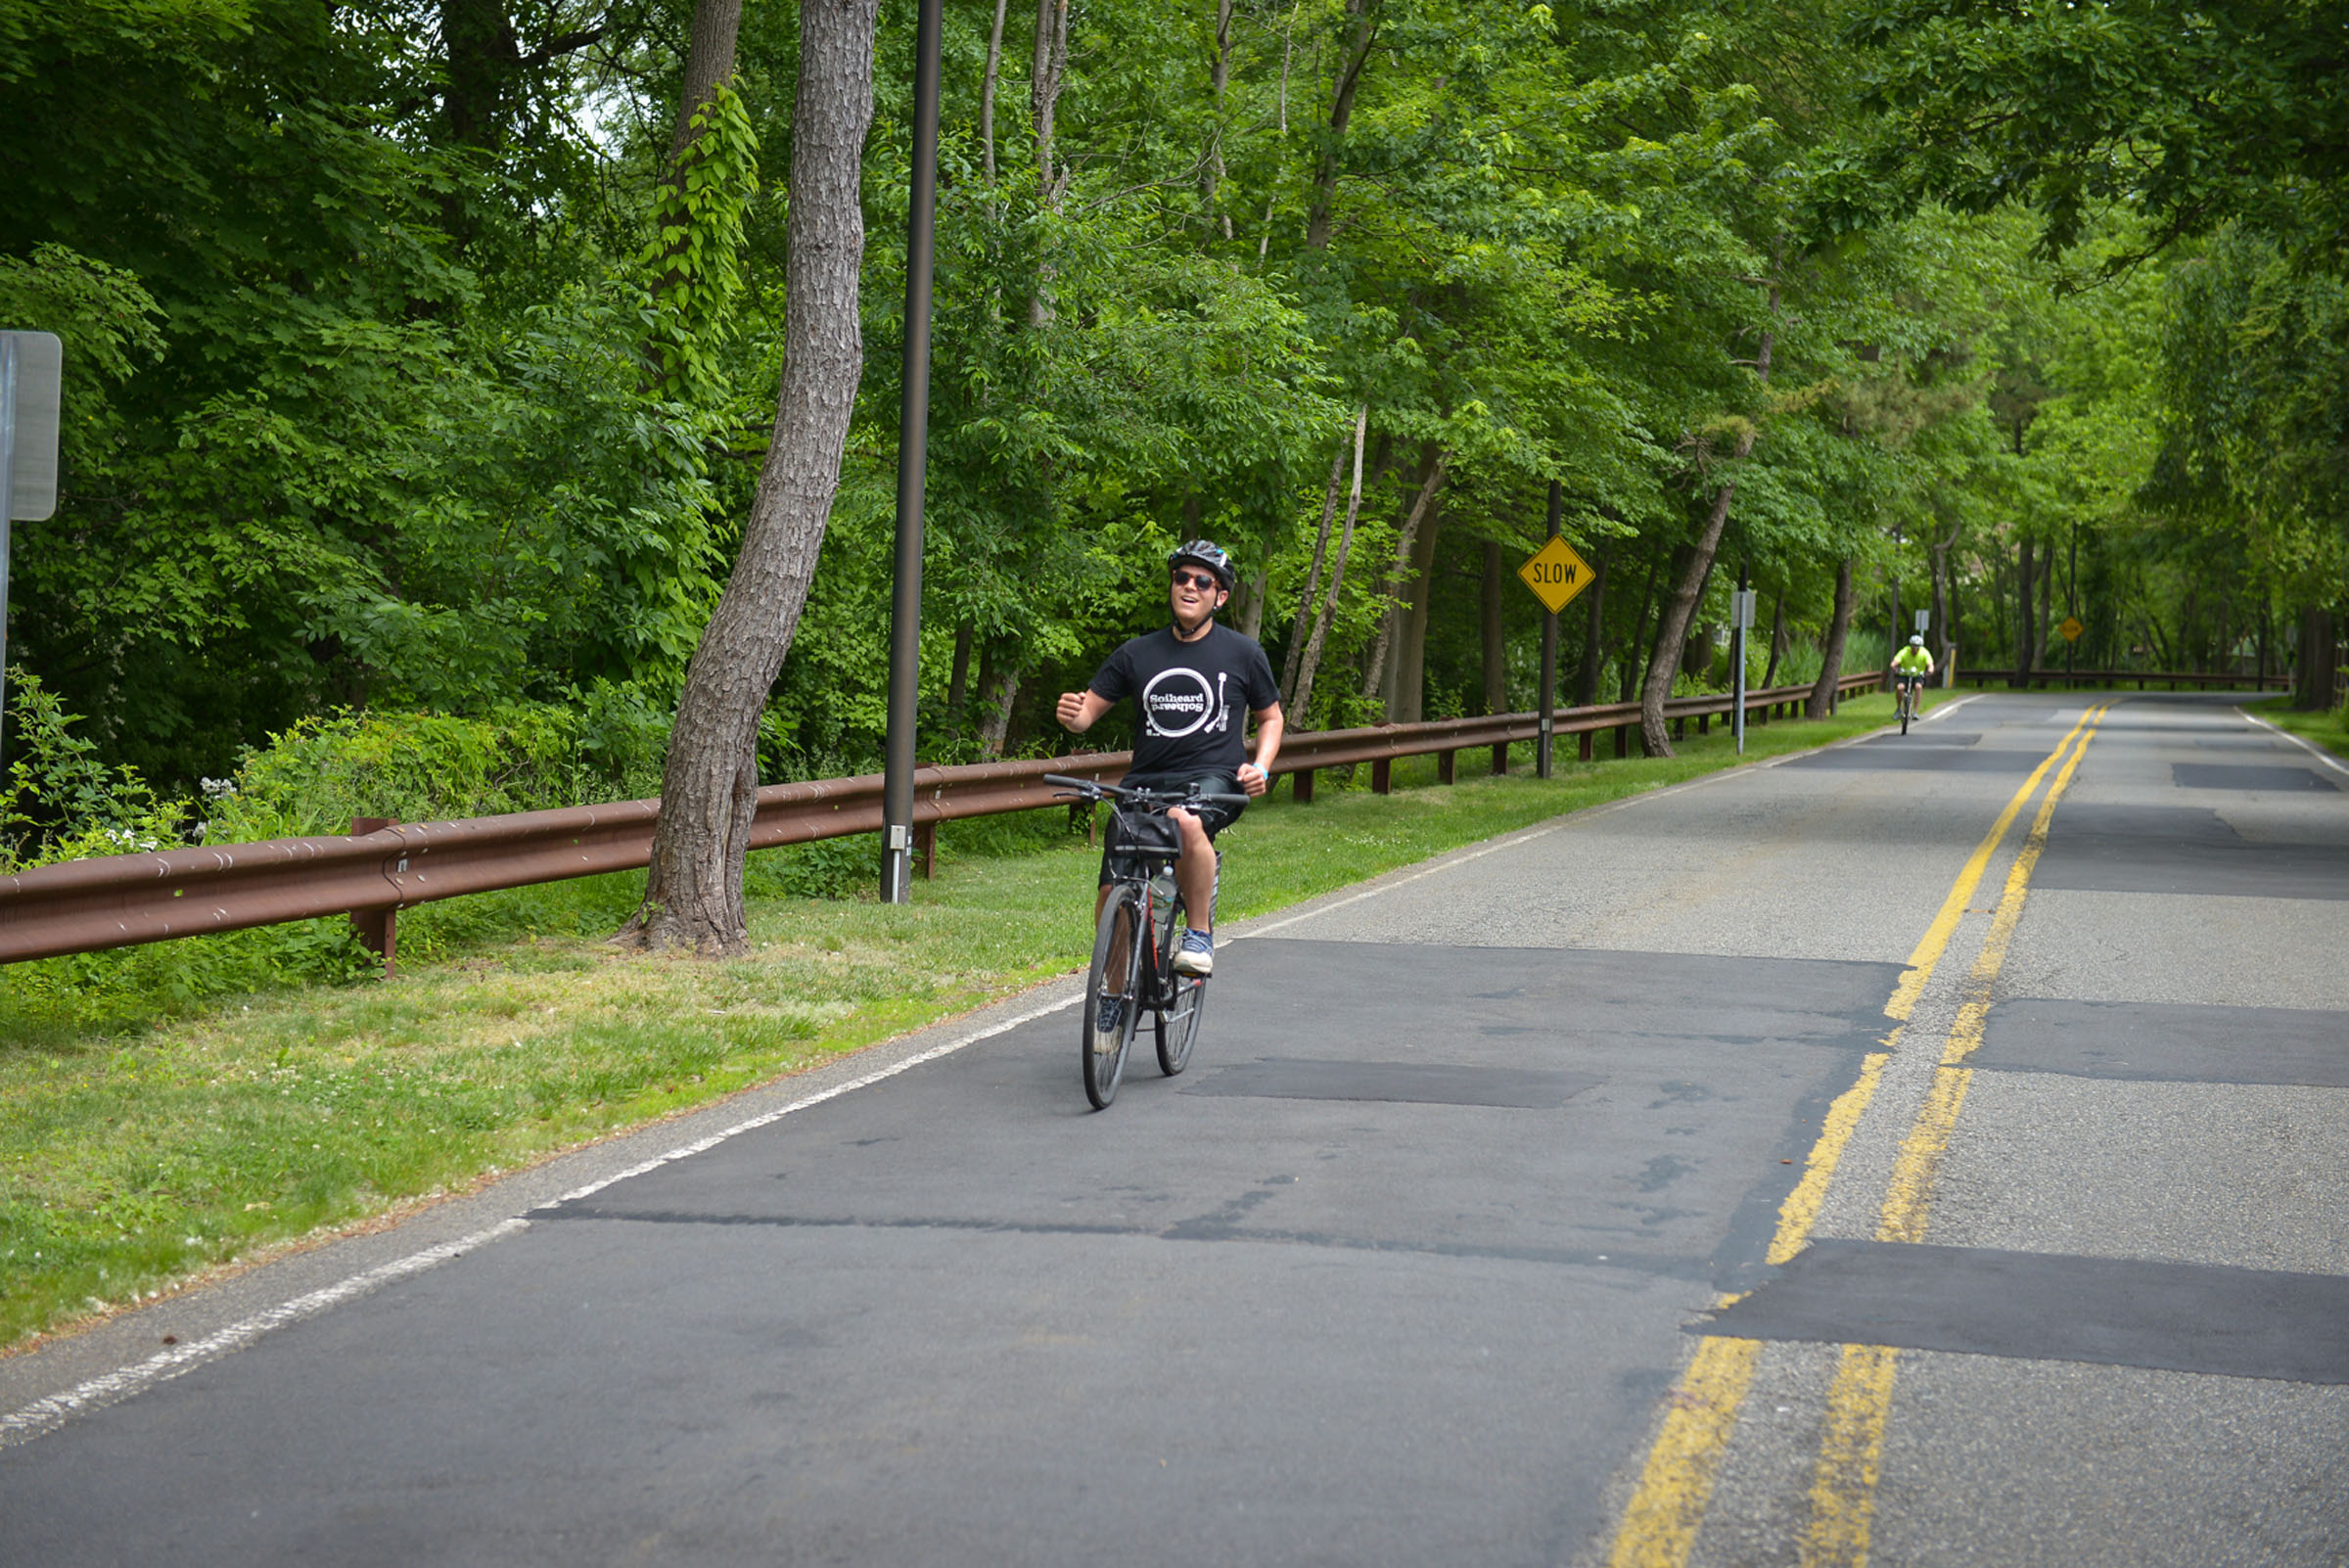 2017-06-04 GTD4A Charity Bike Ride - BCC - Paramus NJ-2422.jpg